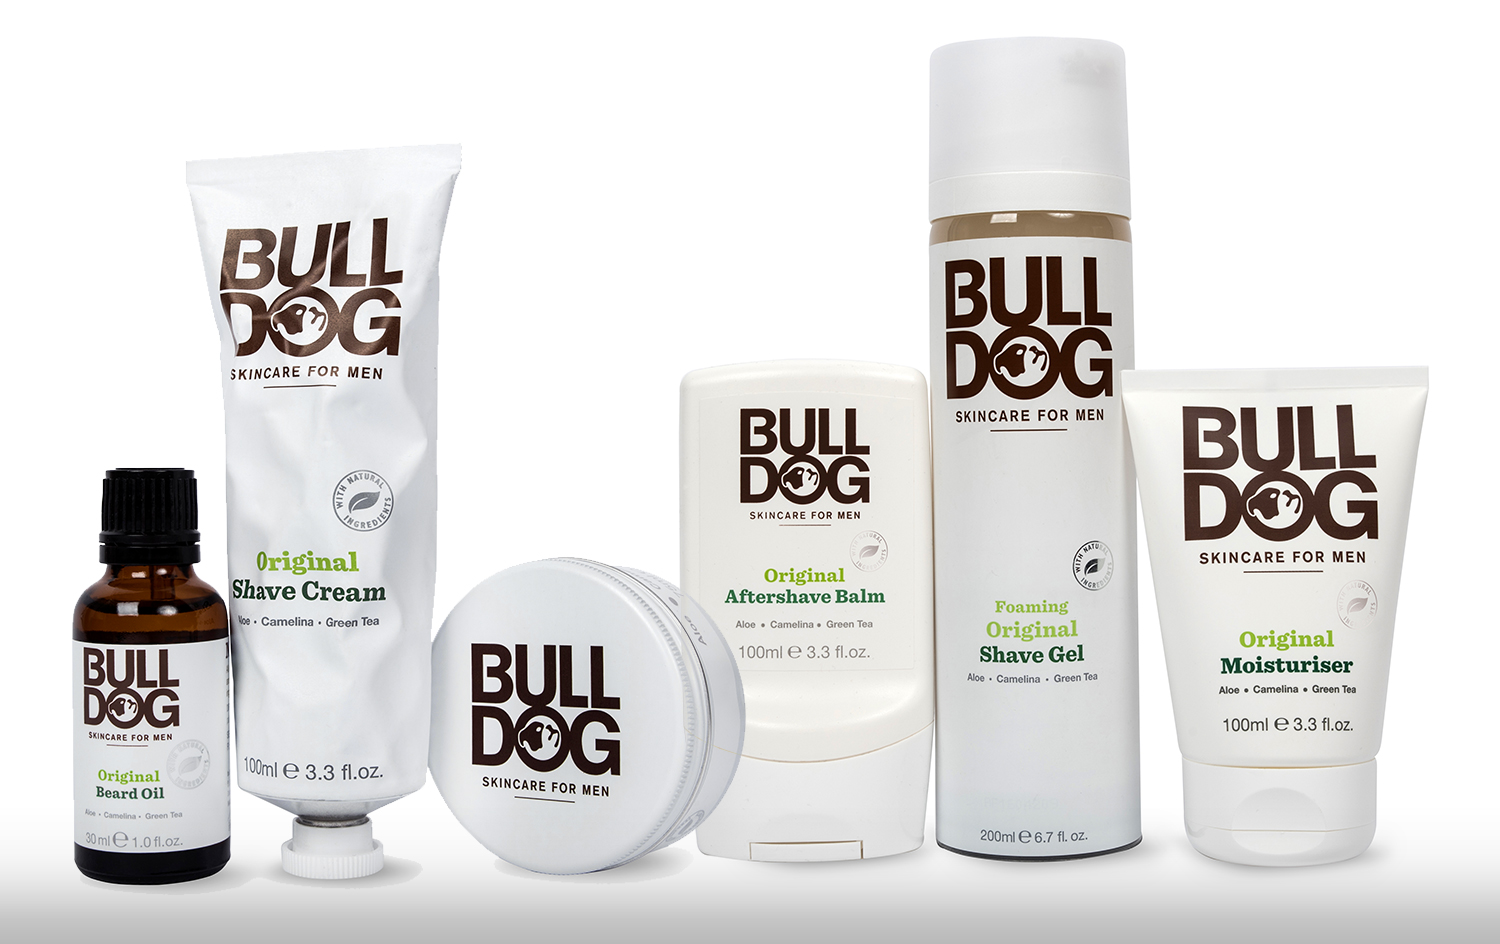 Bulldog mens grooming skincare products, Australia mens magazine